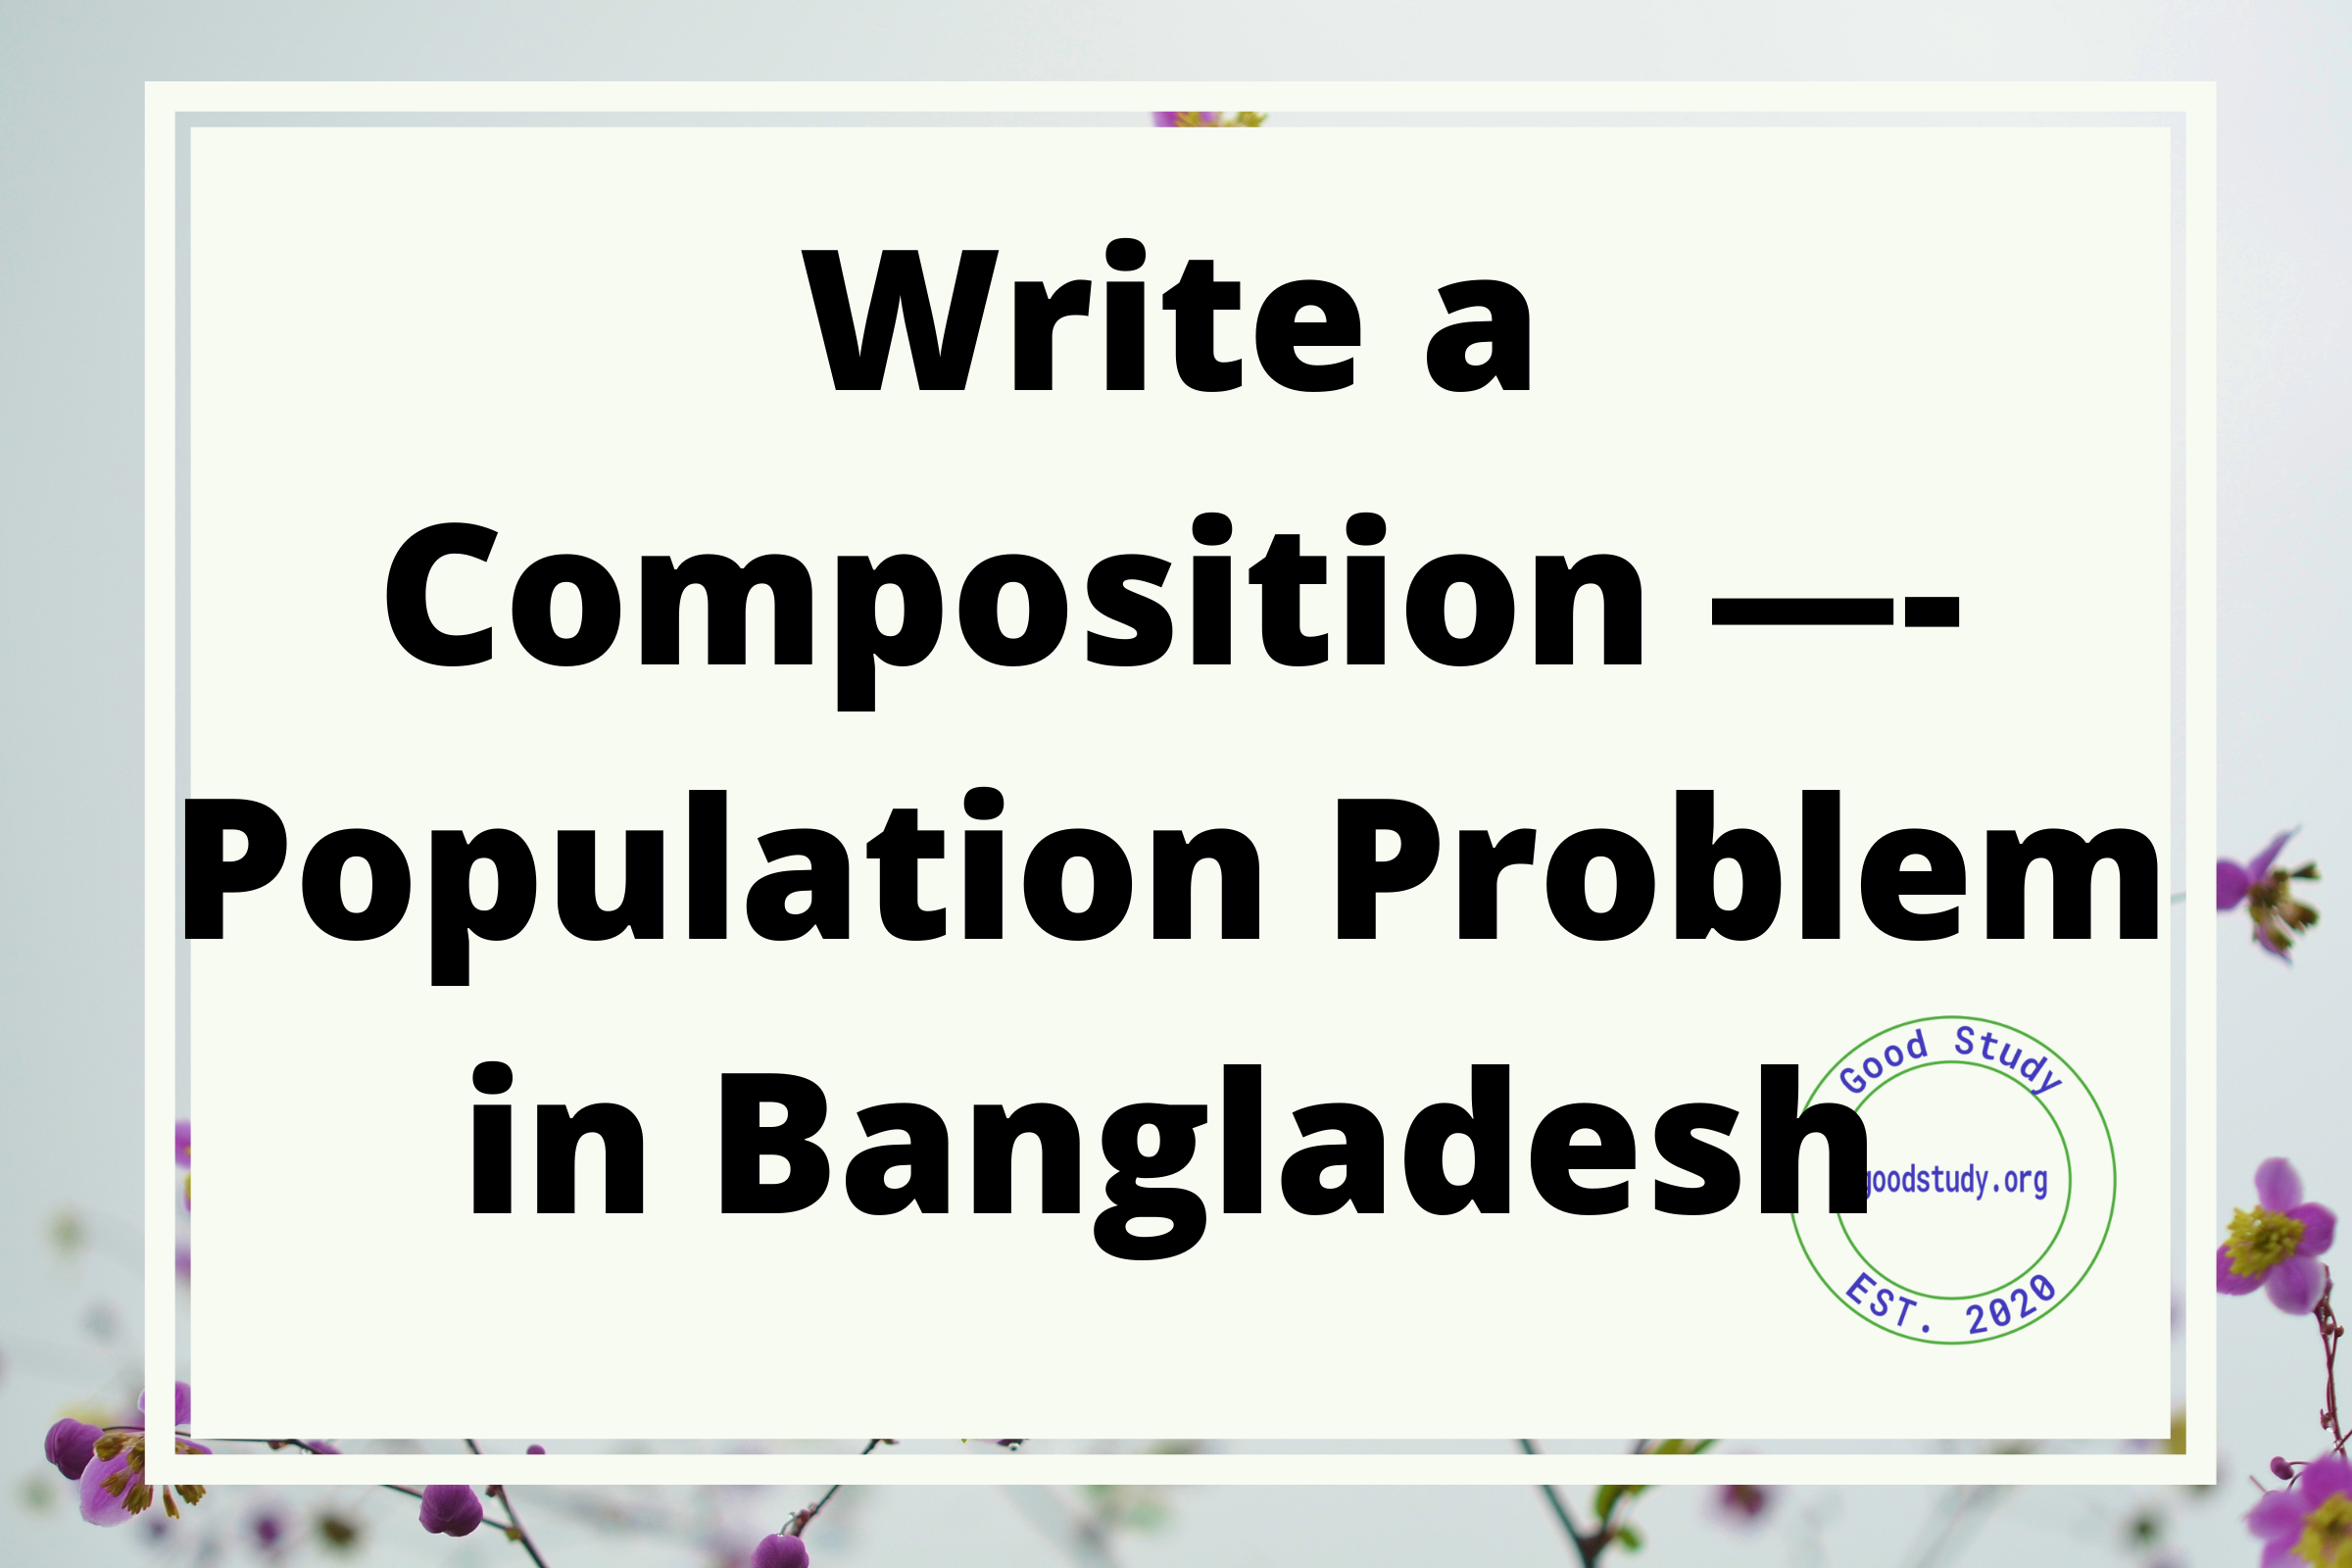 Population Problem in Bangladesh